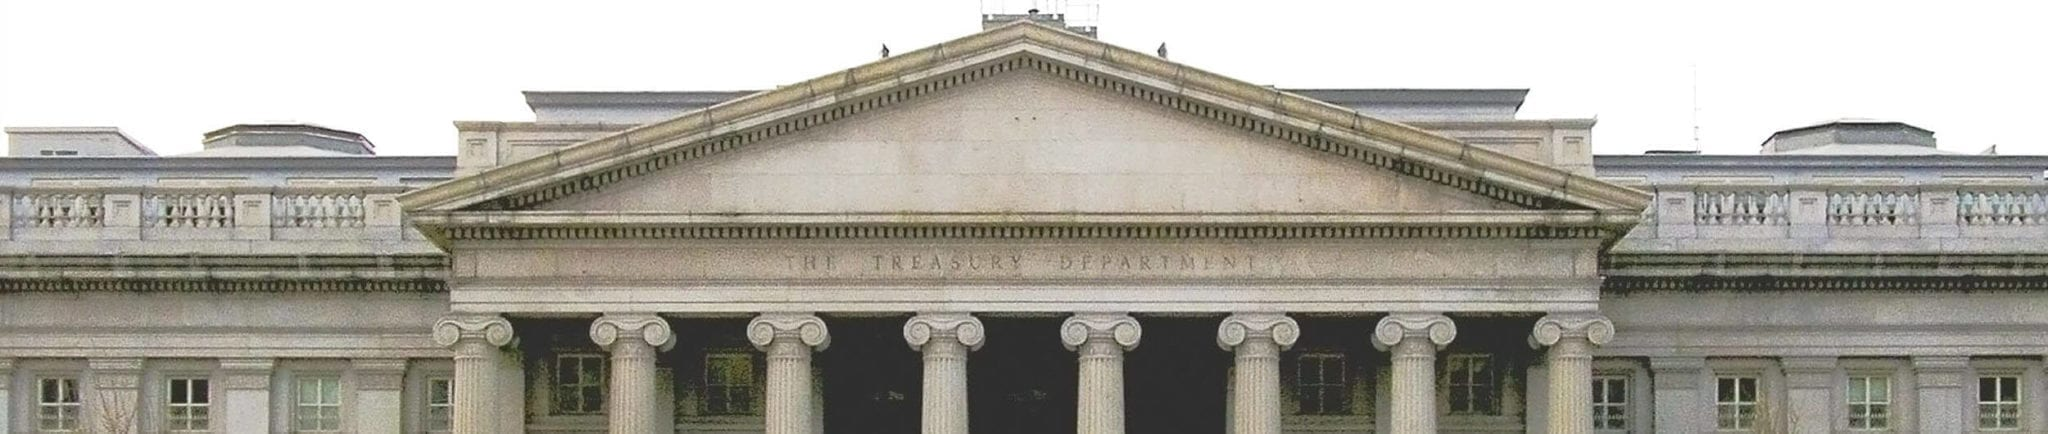 What is the US Treasury Department?